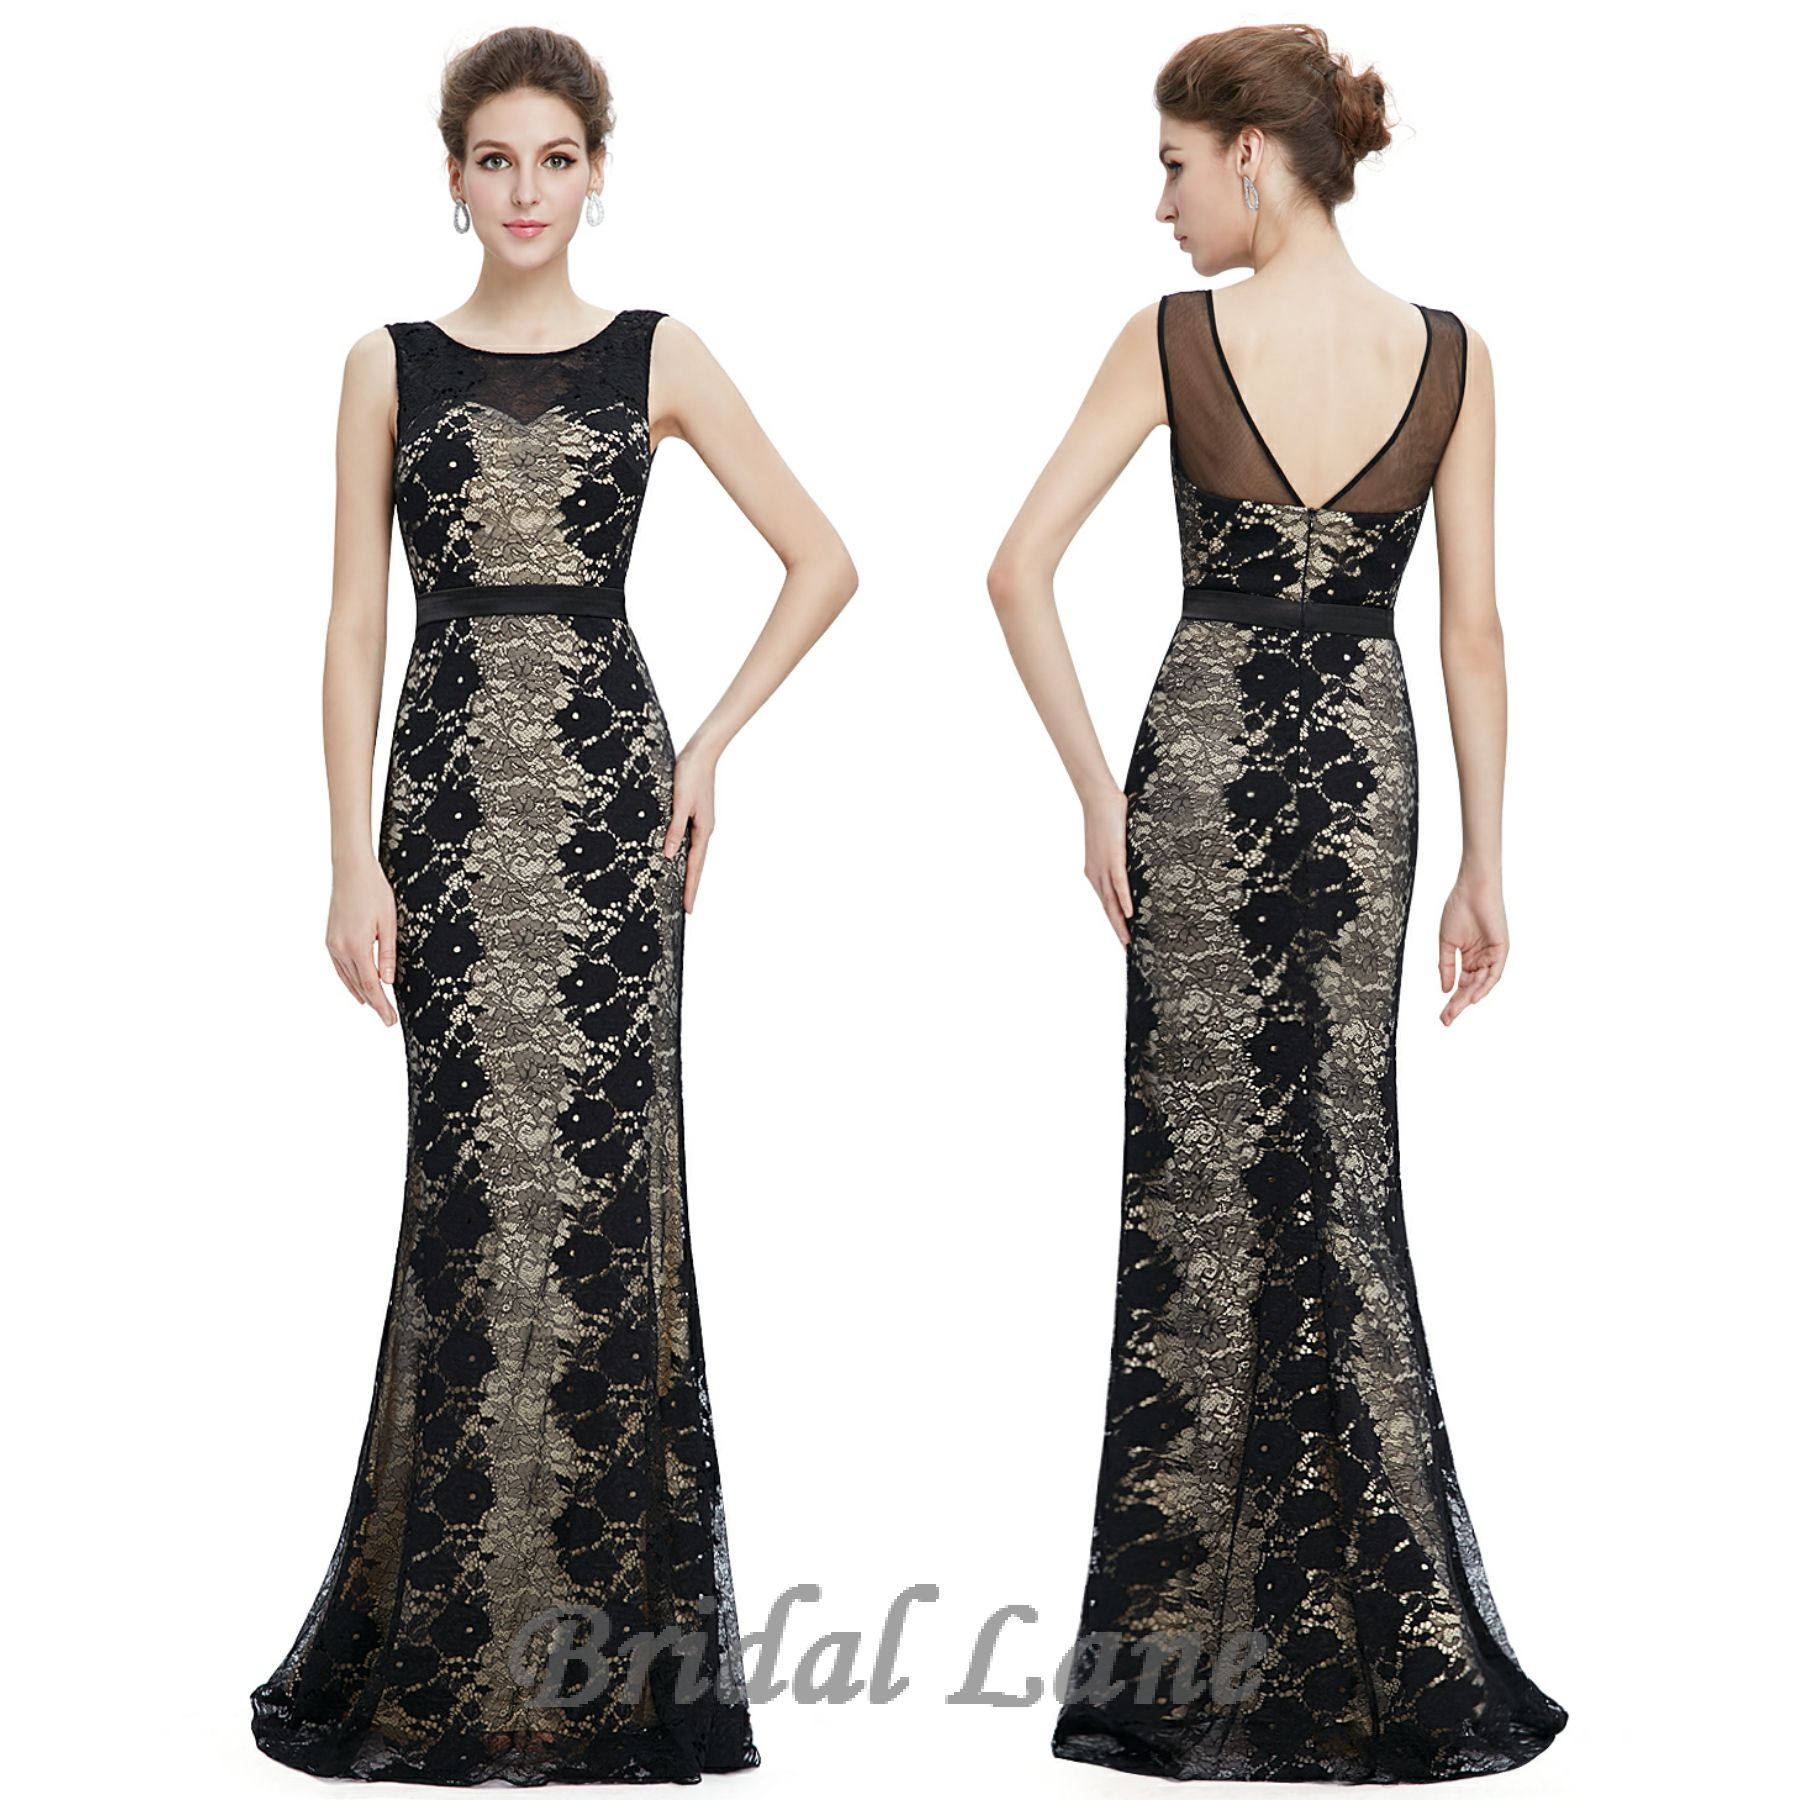 Matric dance dresses matric farewell dresses evening dresses pictures - Full Lace Black And White Evening Dresses For Matric Ball Matric Farewell In Cape Town